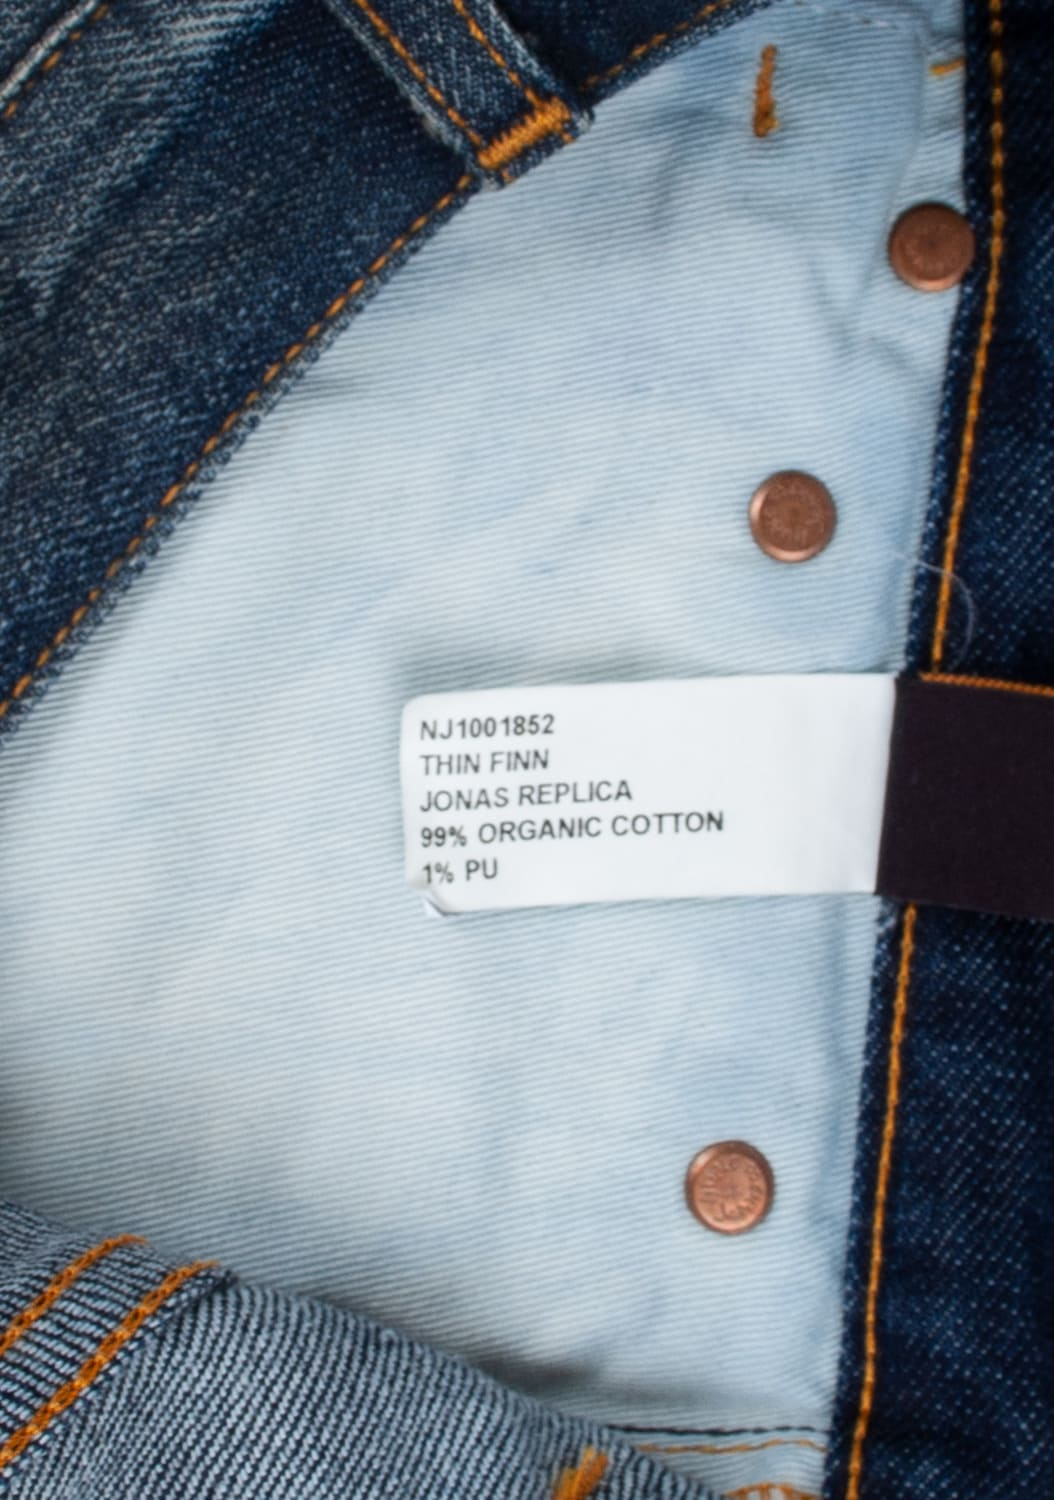 Nudie-Thin-Finn-Jonas-Replica-Selvage-Selvedge-melyni-dzinsai-dydis-31-32 (8)